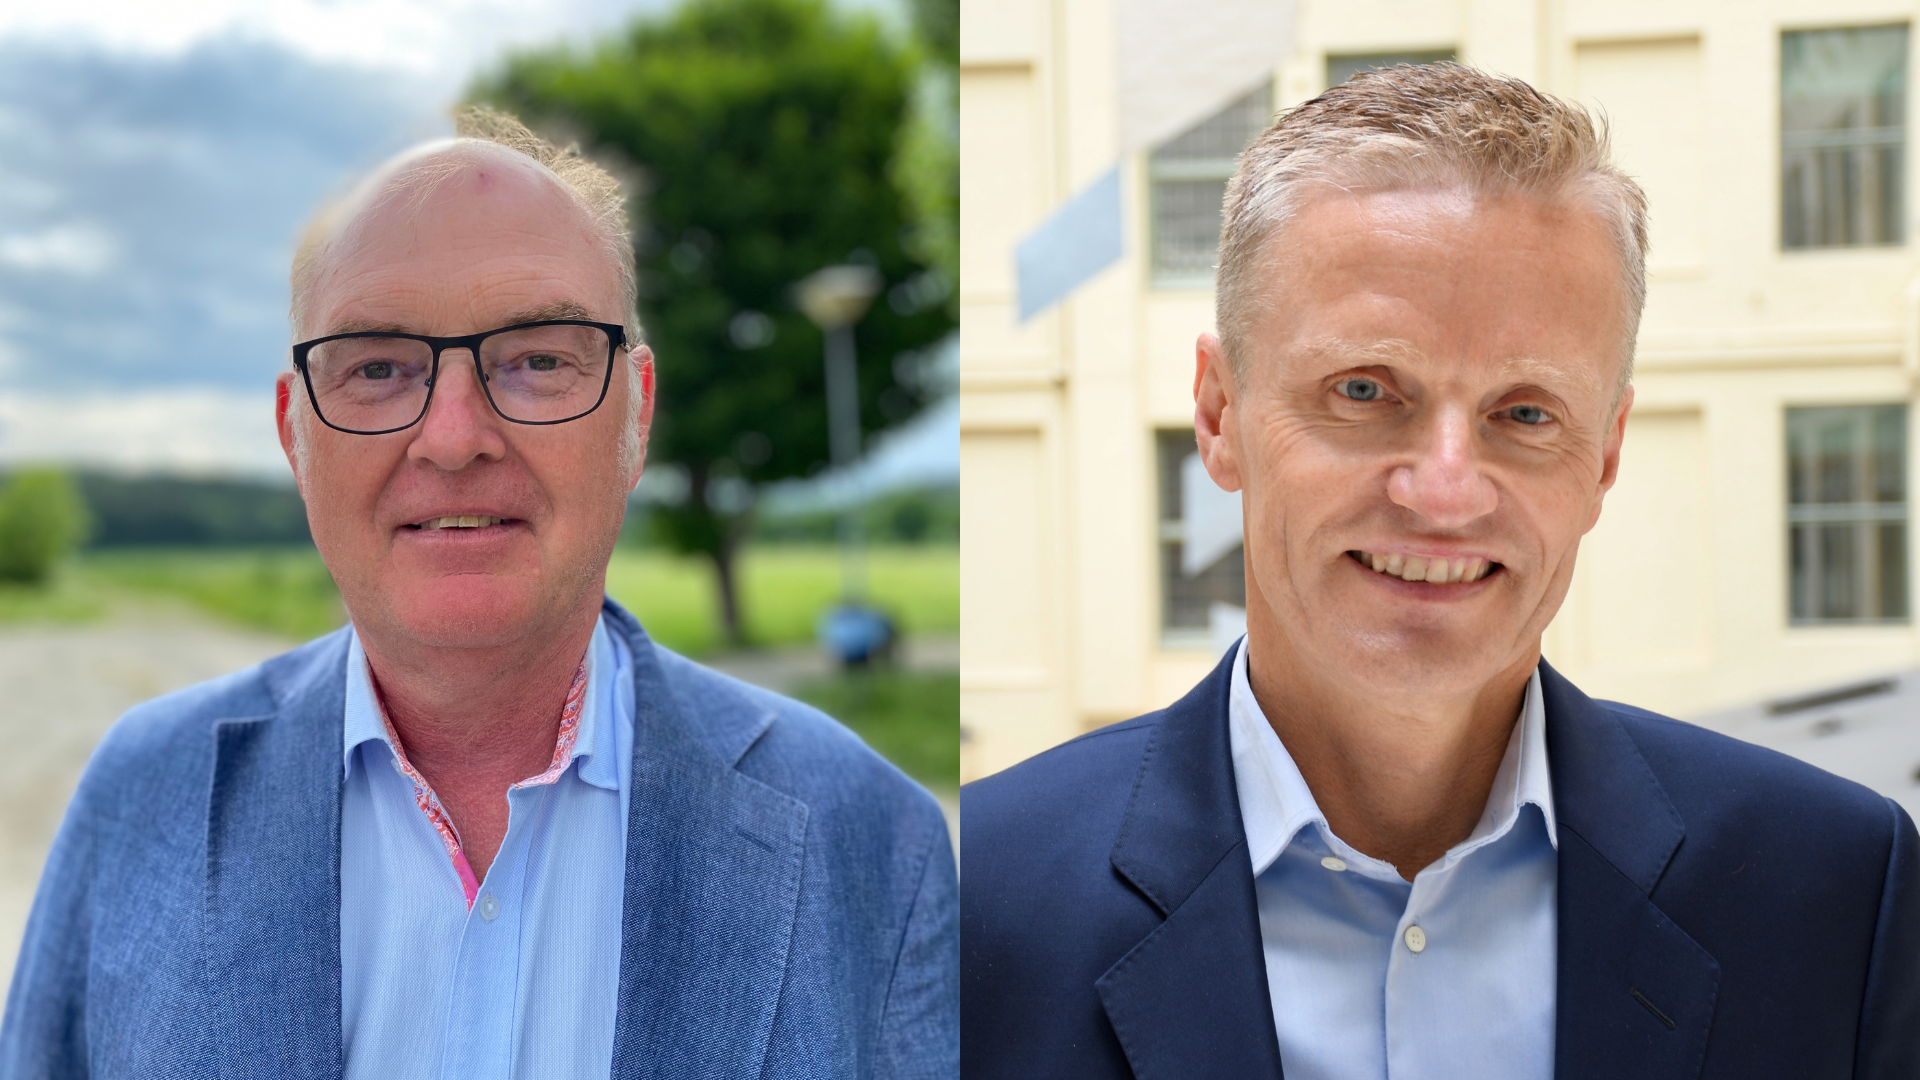 Bumbee Labs raises 21 MSEK and appoints Eirik Lunde as Chair